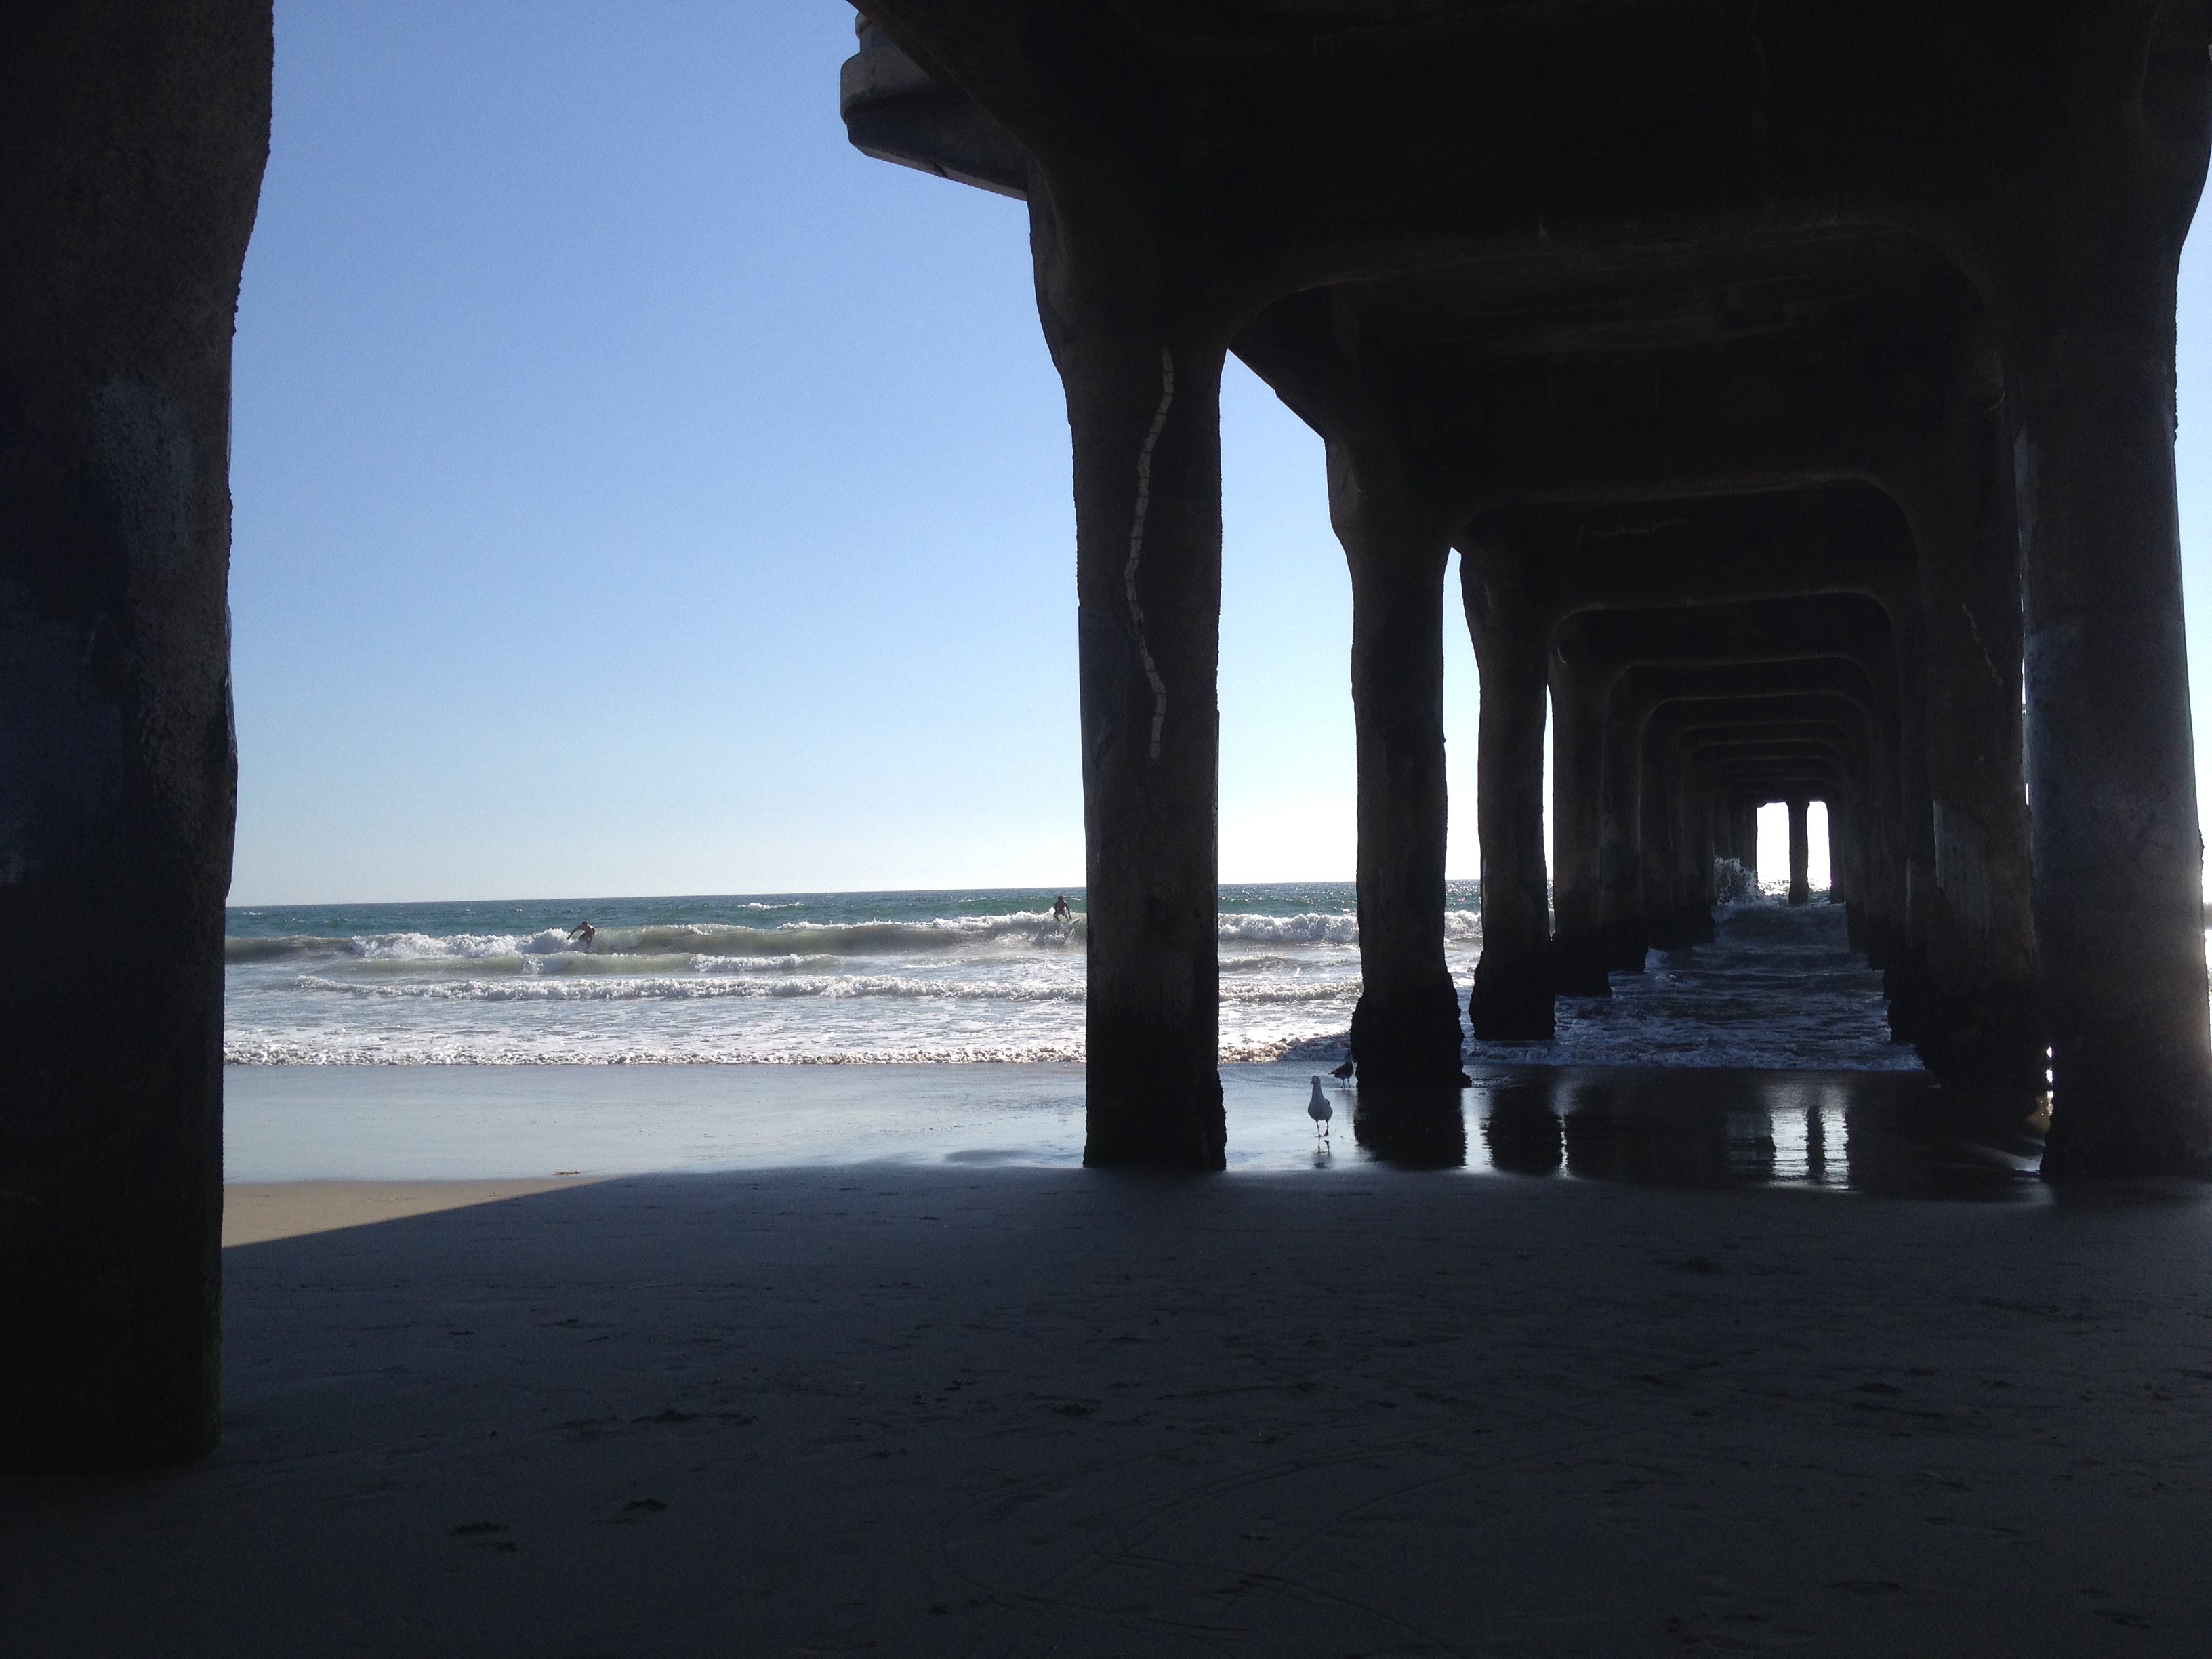 Under the Pier of Manhattan Beach